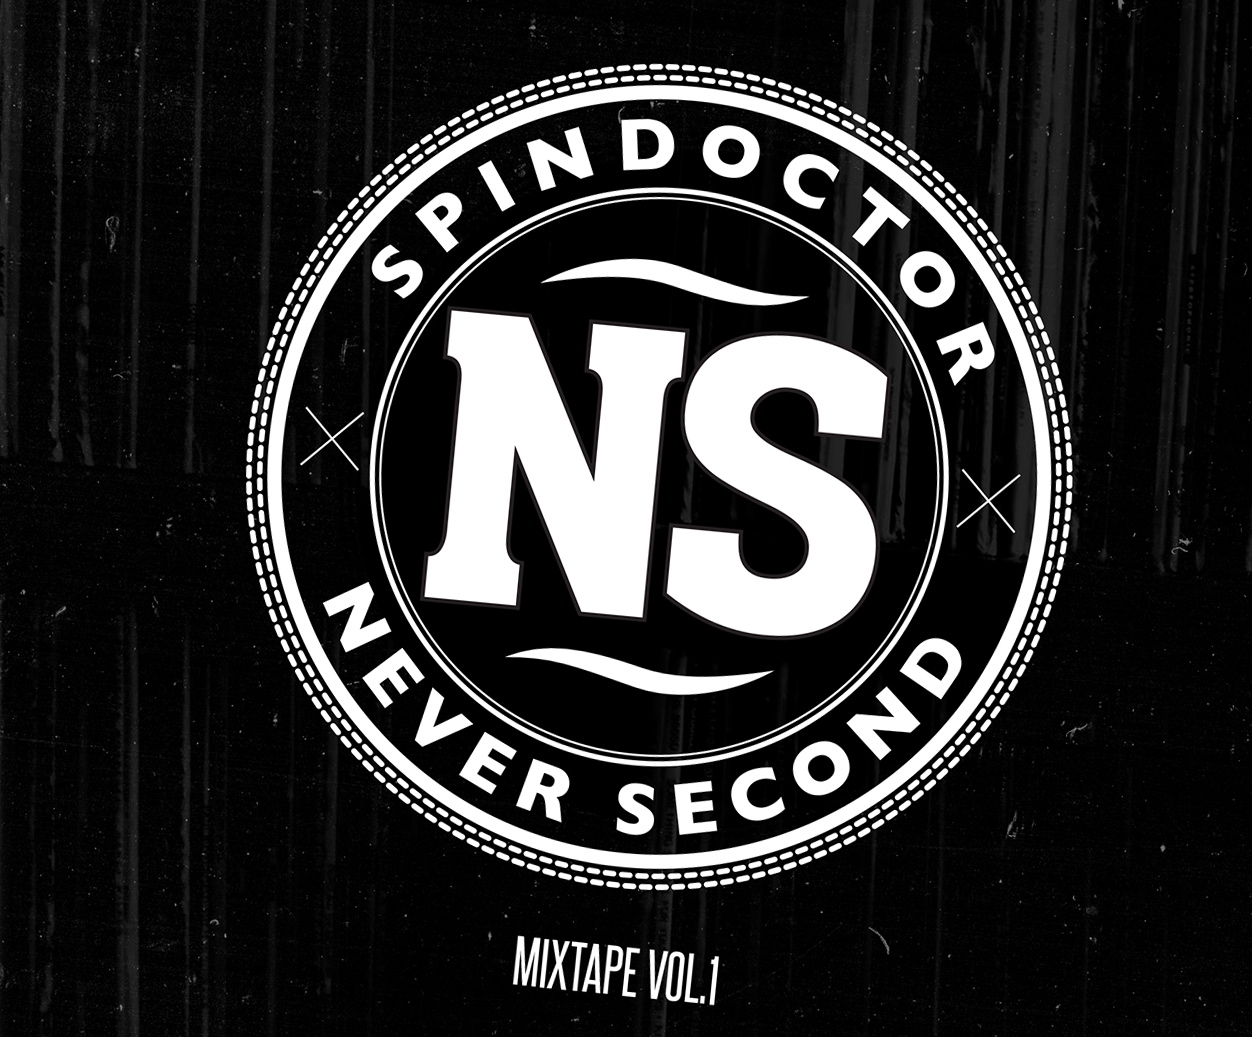 Never Second Mixtape